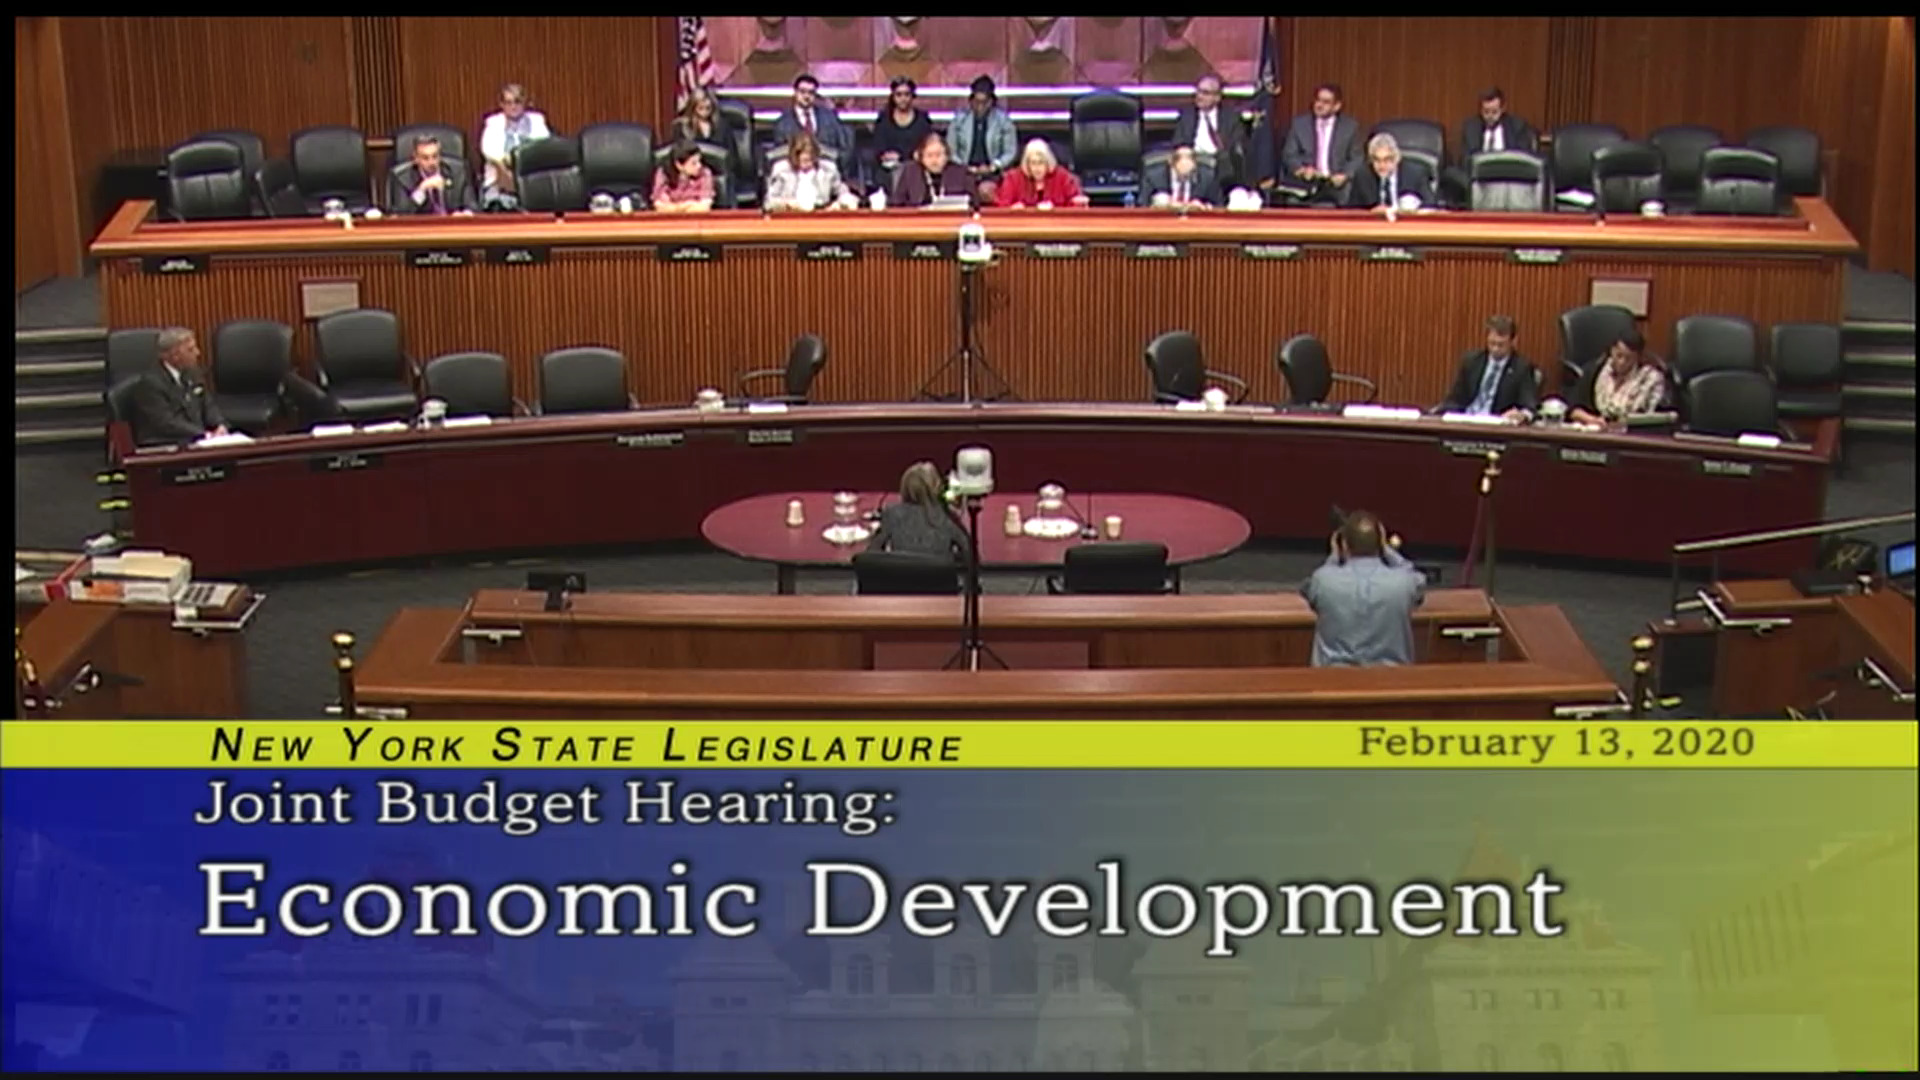 2020 Joint Budget Hearing on Economic Development (2)